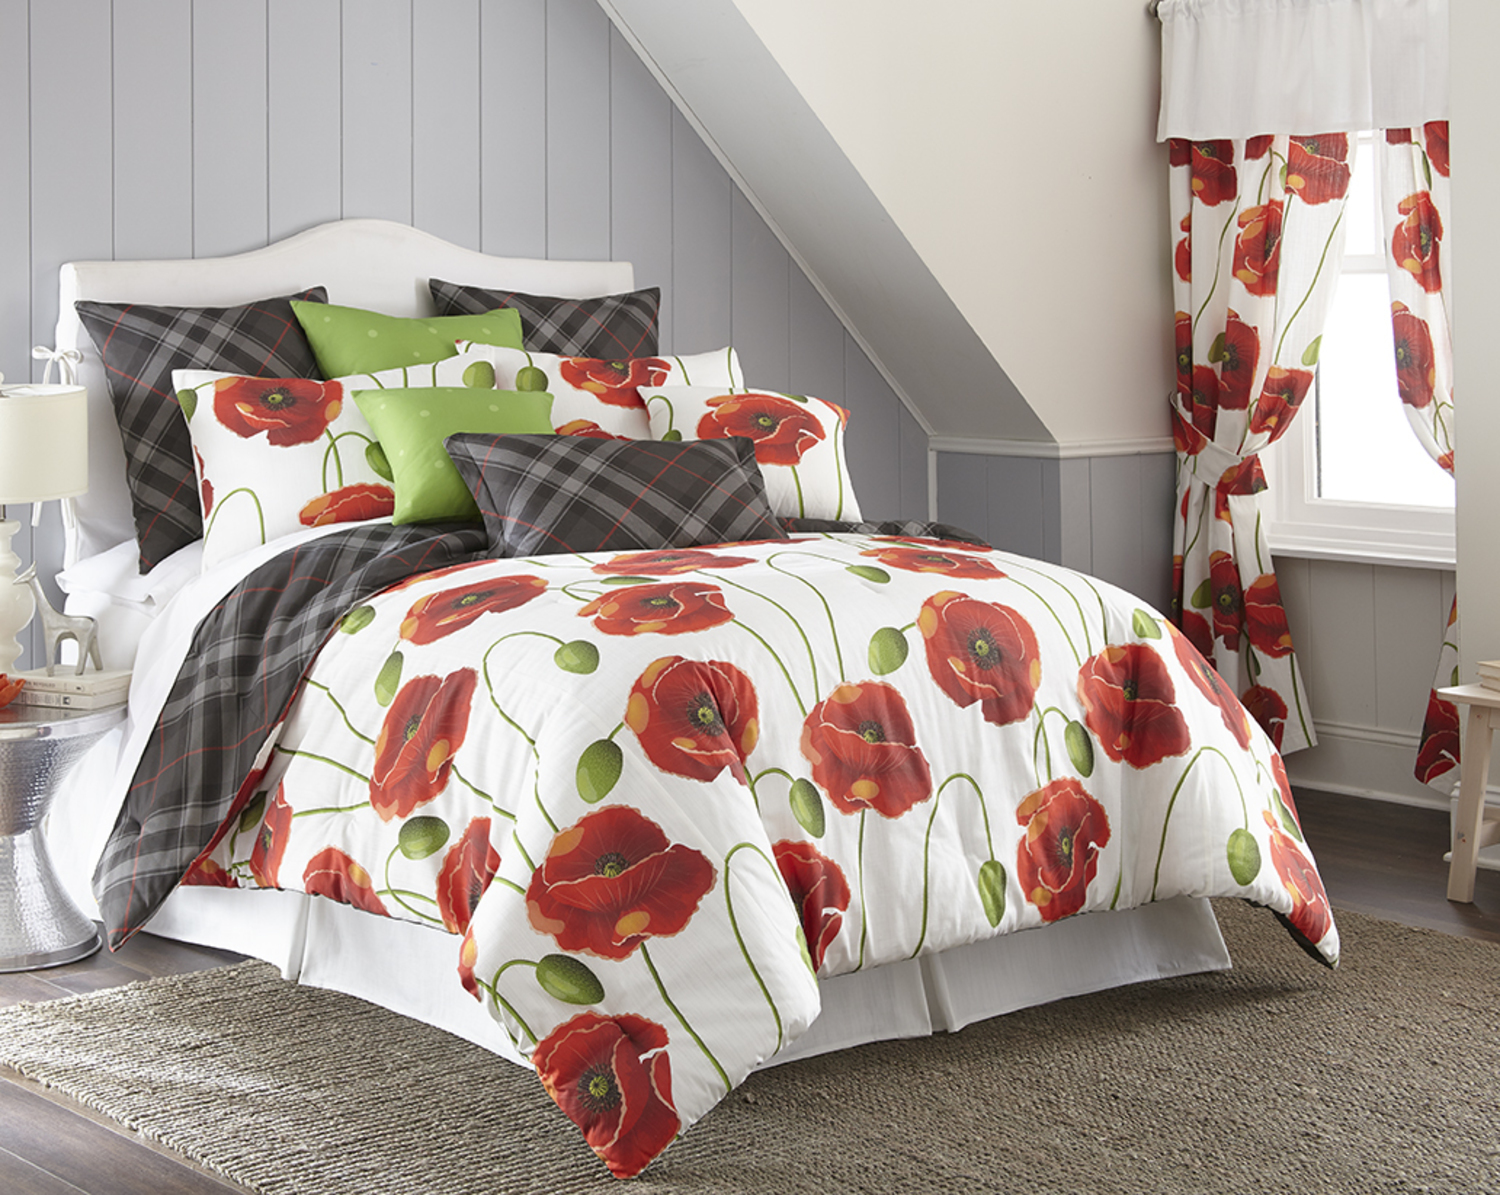 Poppy Plaid by Colcha Linens